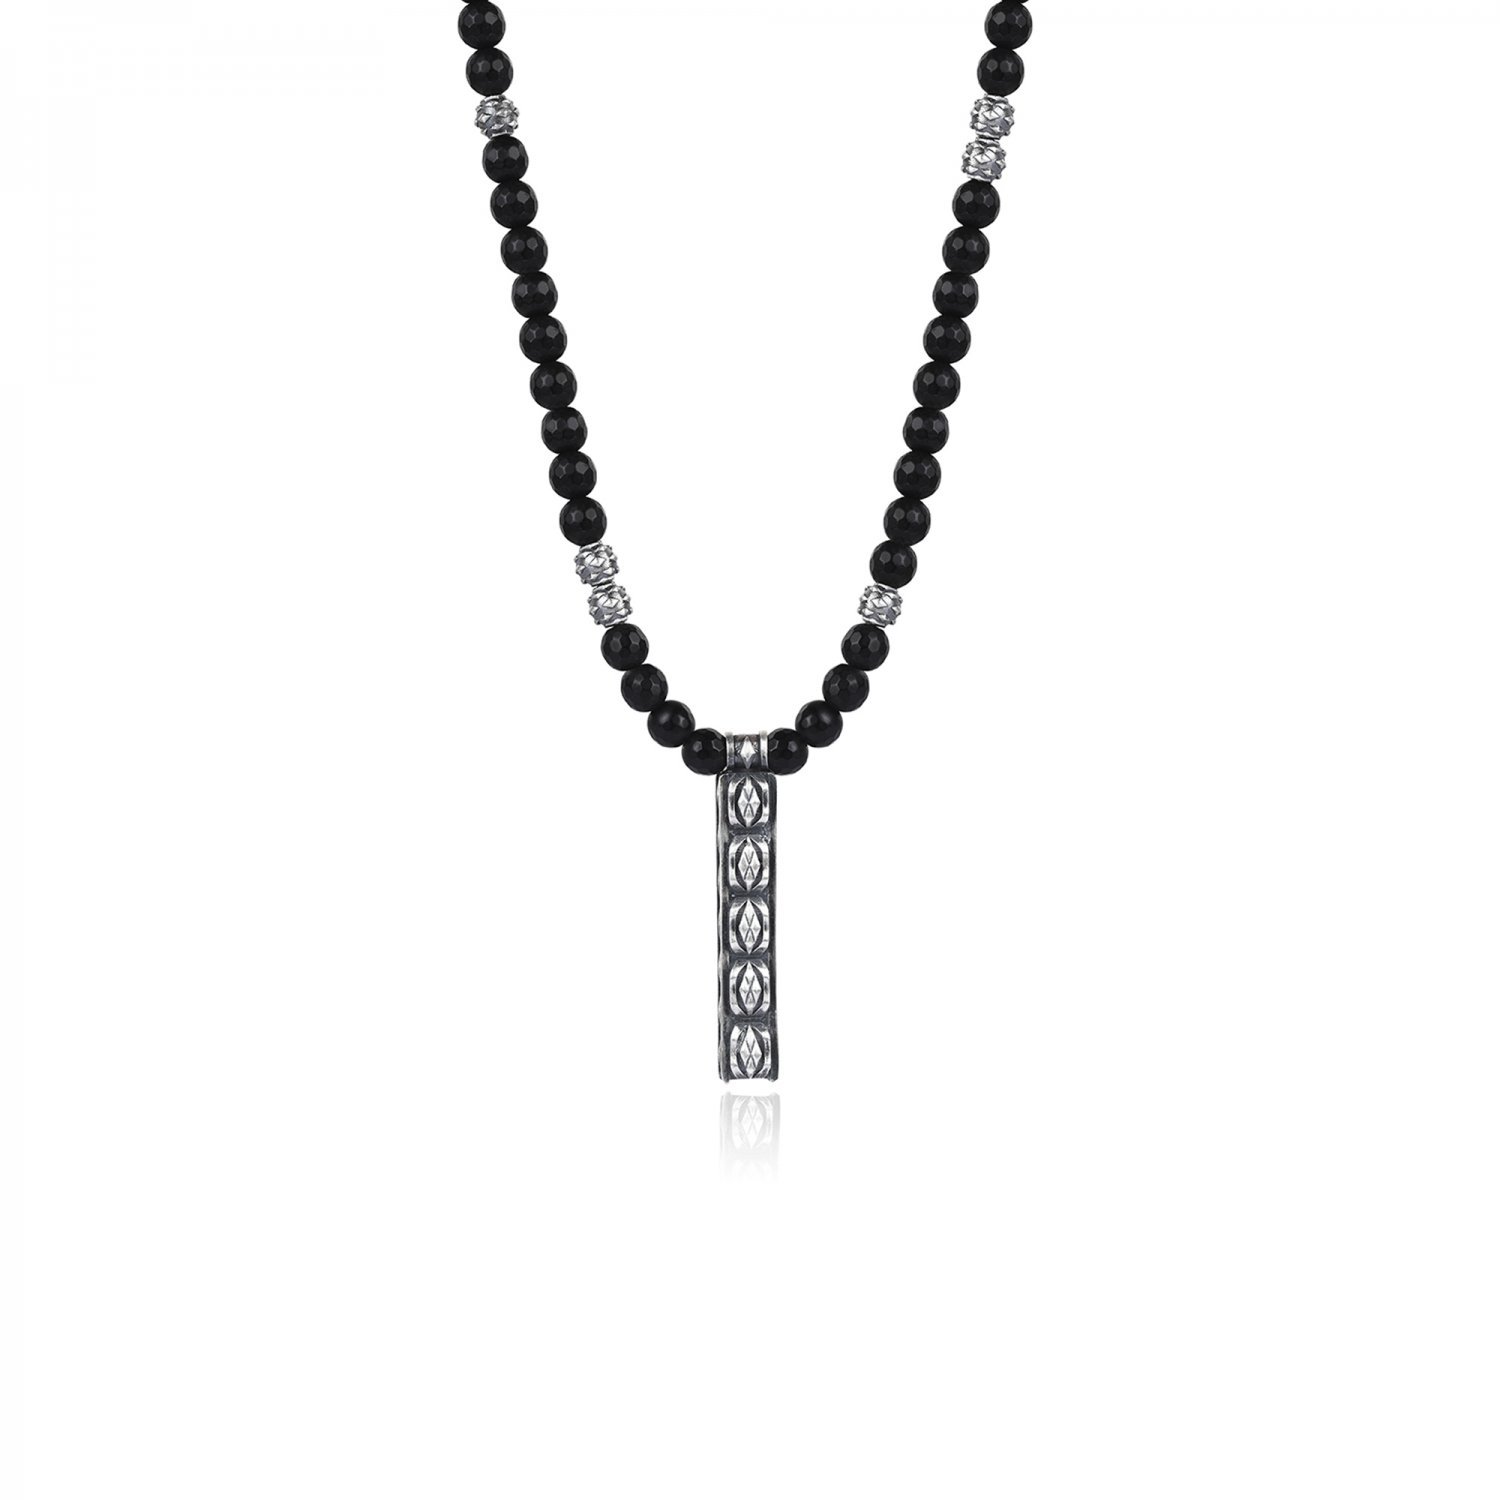 Oxidised Silver Cubic Snake Faceted Black Onyx Bead Necklace